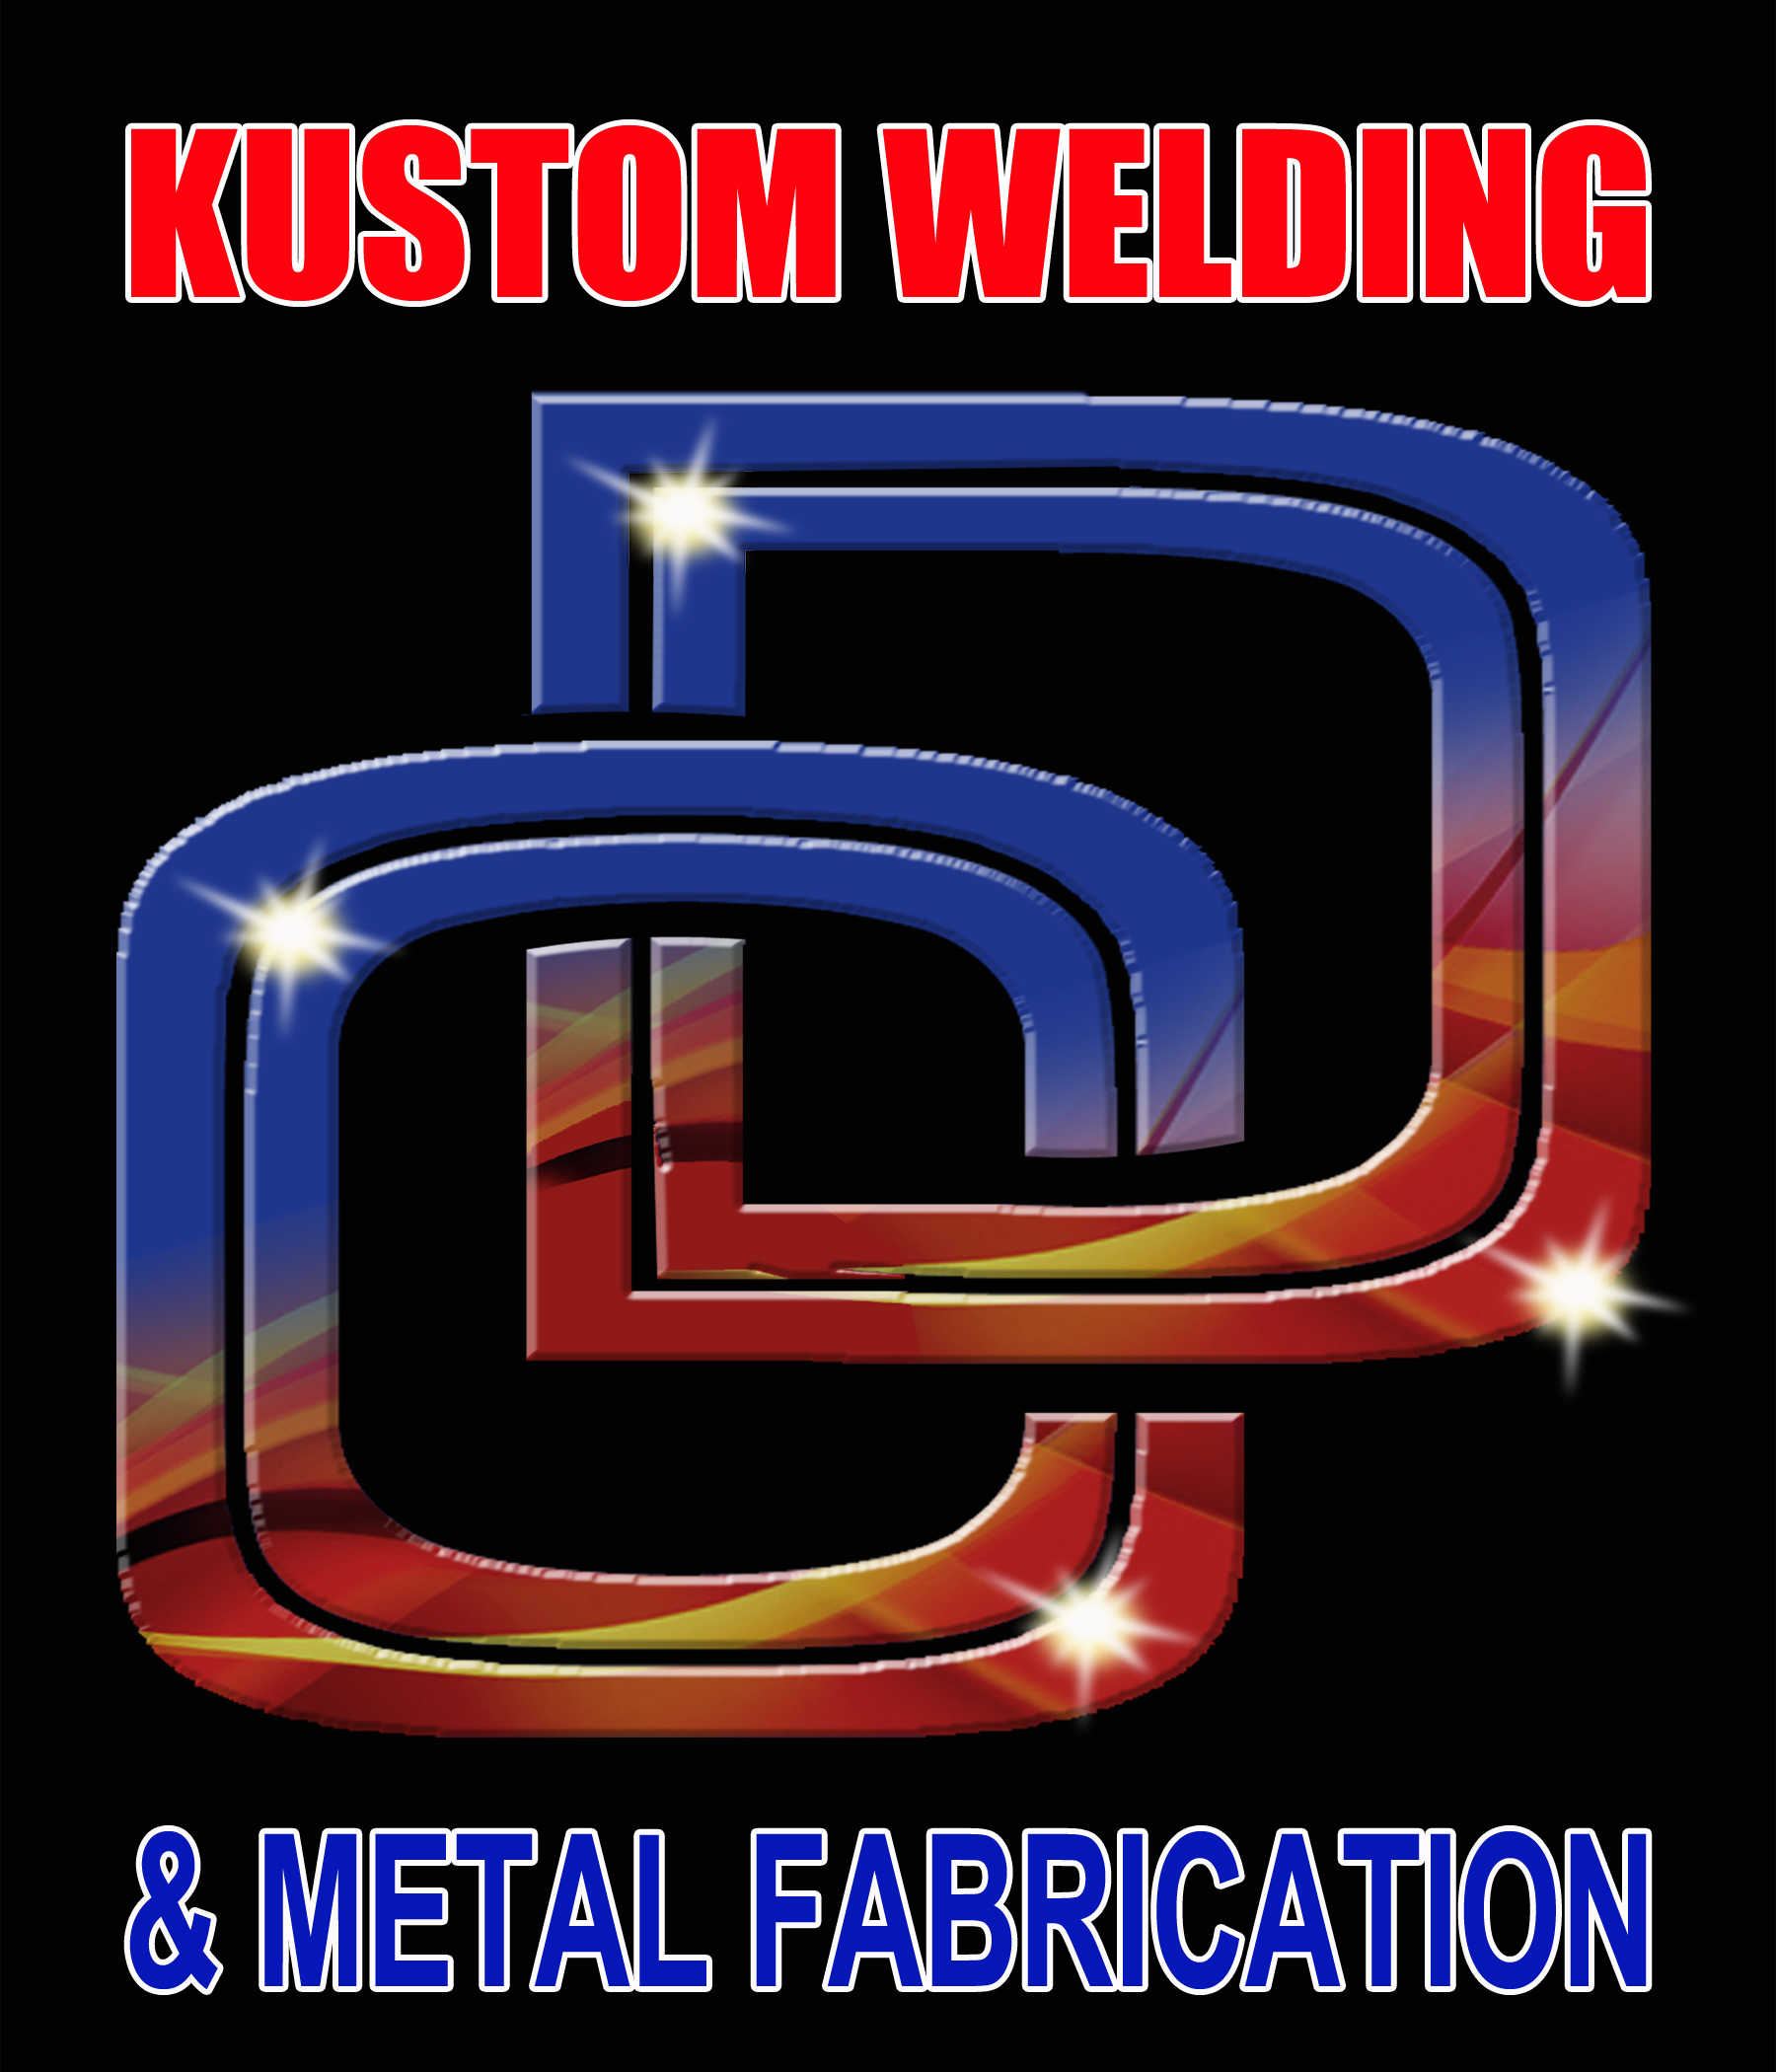 Logo Design by Kitz Malinao - Entry No. 21 in the Logo Design Contest Imaginative Logo Design for DC KUSTOM WELDING & METAL FABRICATION.